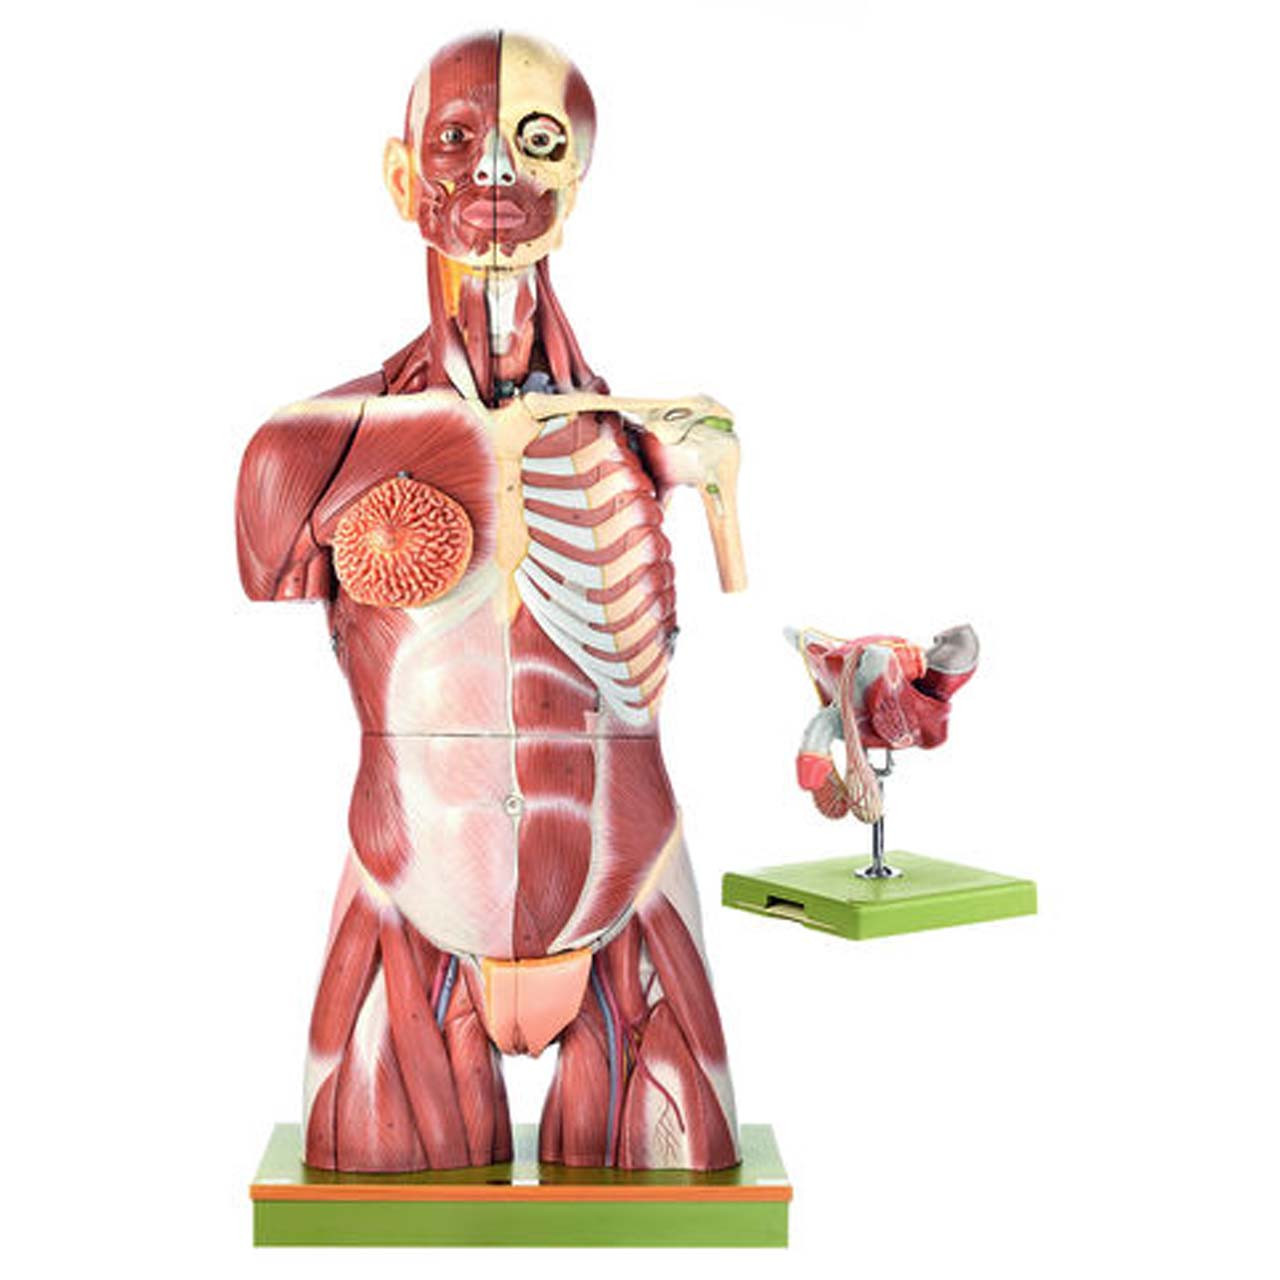 Muscular Torso with Interchangeable Male and Female Genitalia